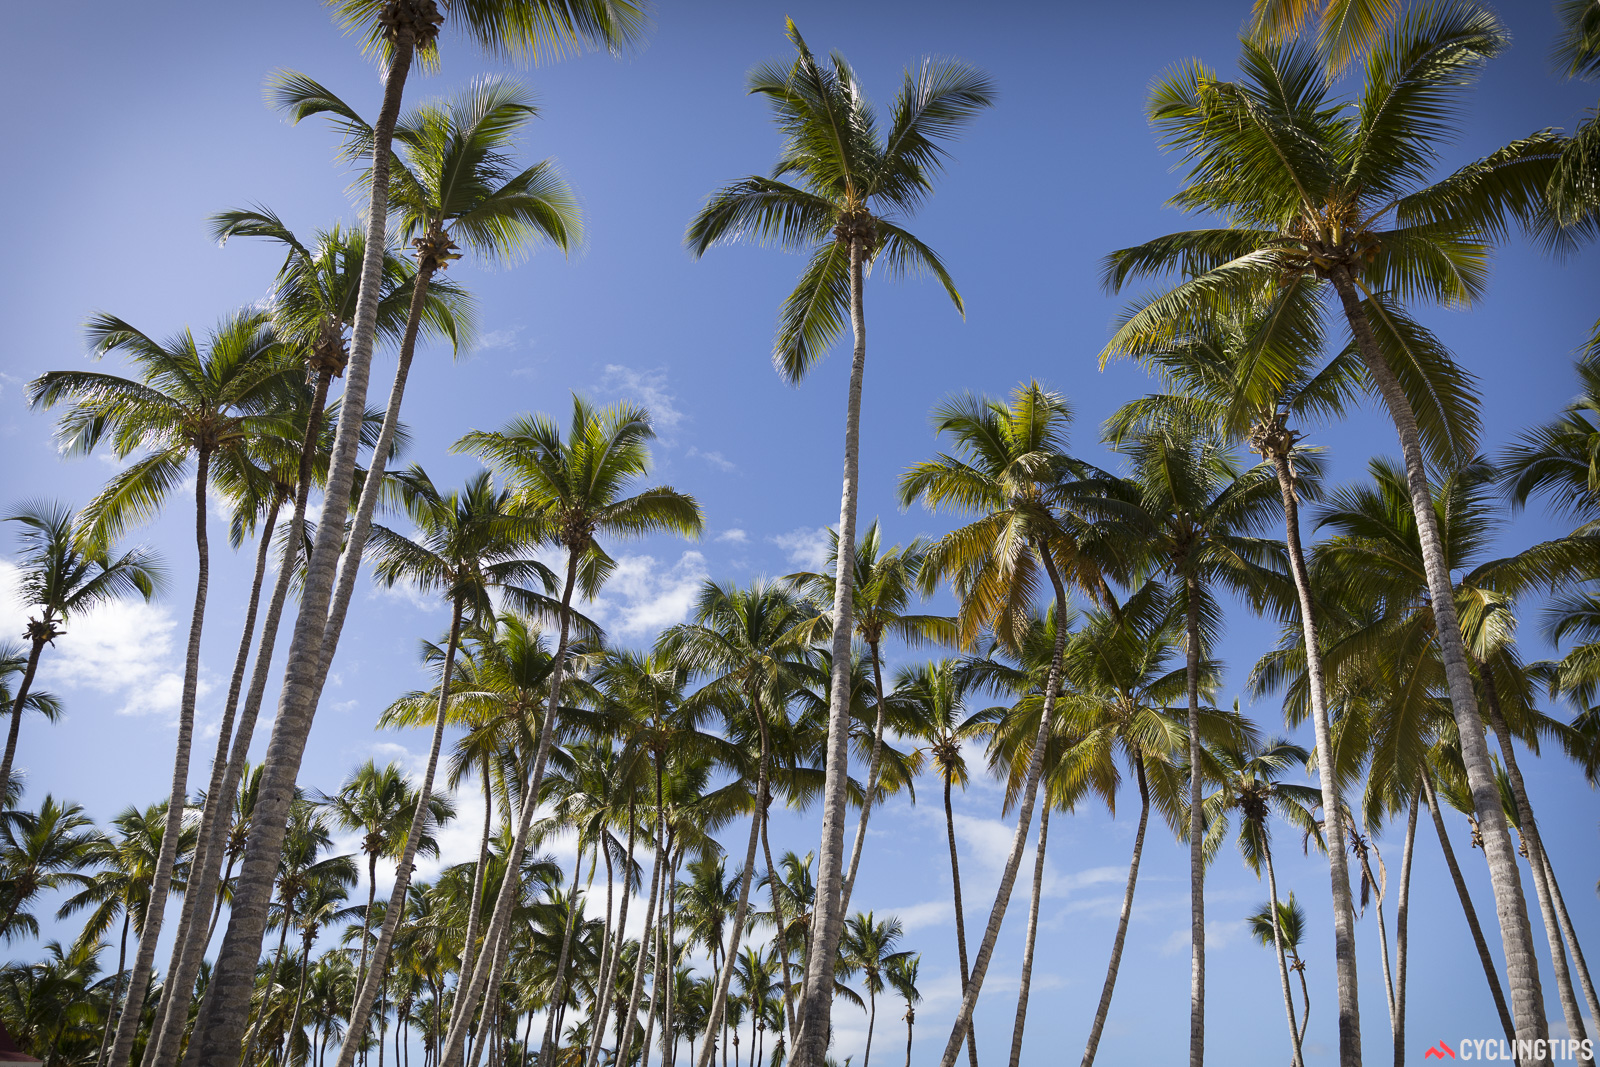 The palm trees and sandy beaches of the Dominican Republic are well known to tourists but, several kilometres away from this location, a very different world exists.